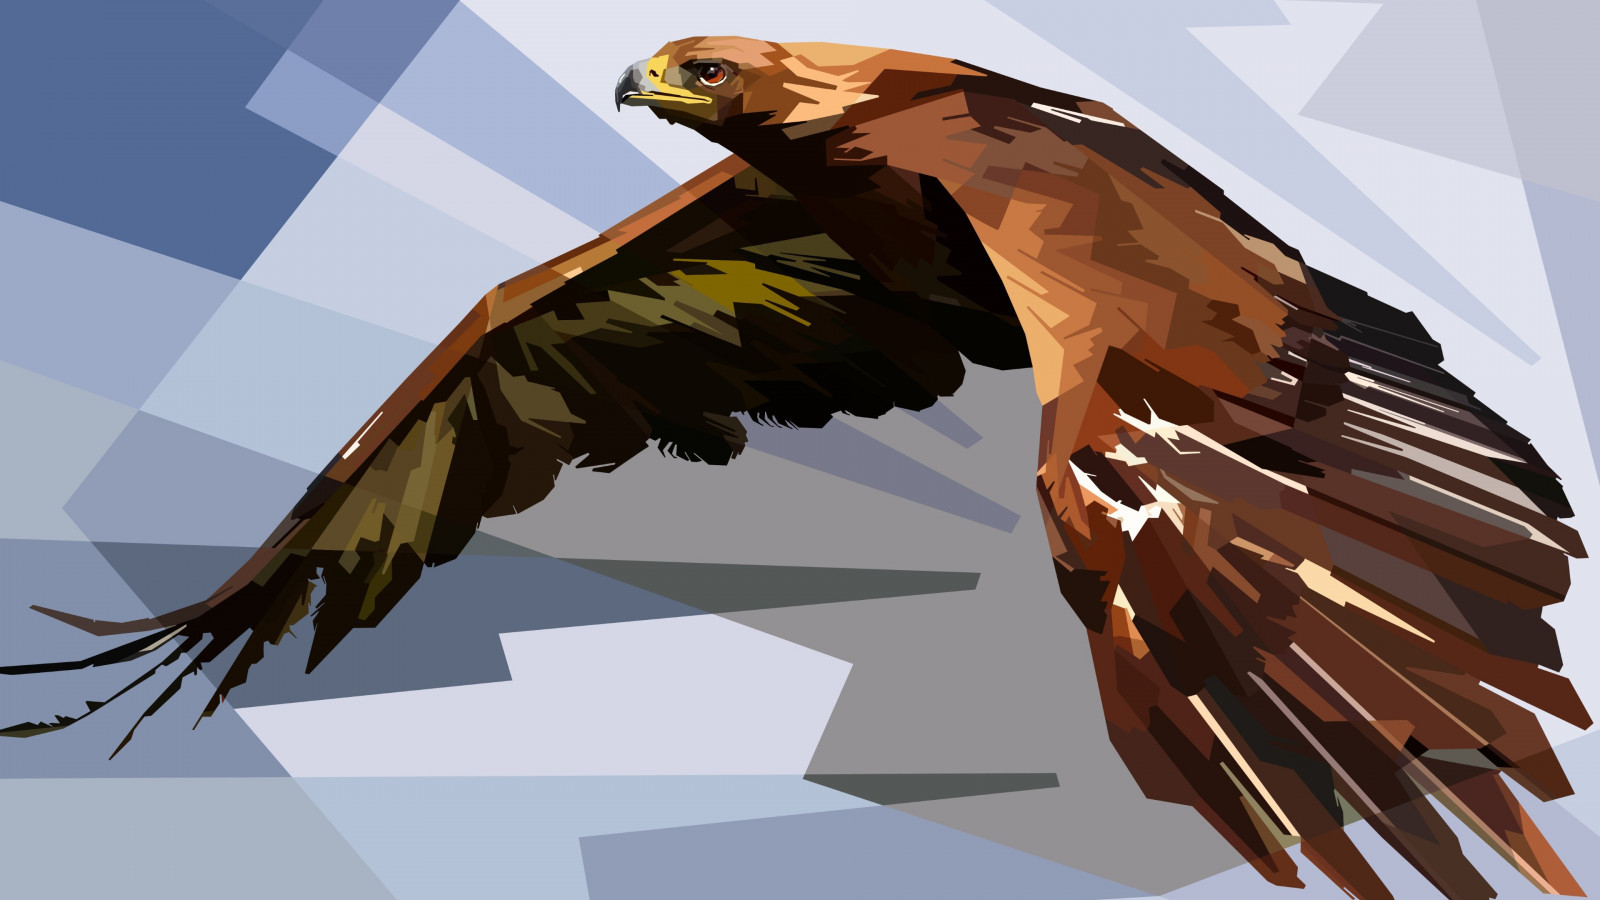 Digital drawing of an eagle | 1600x900 wallpaper